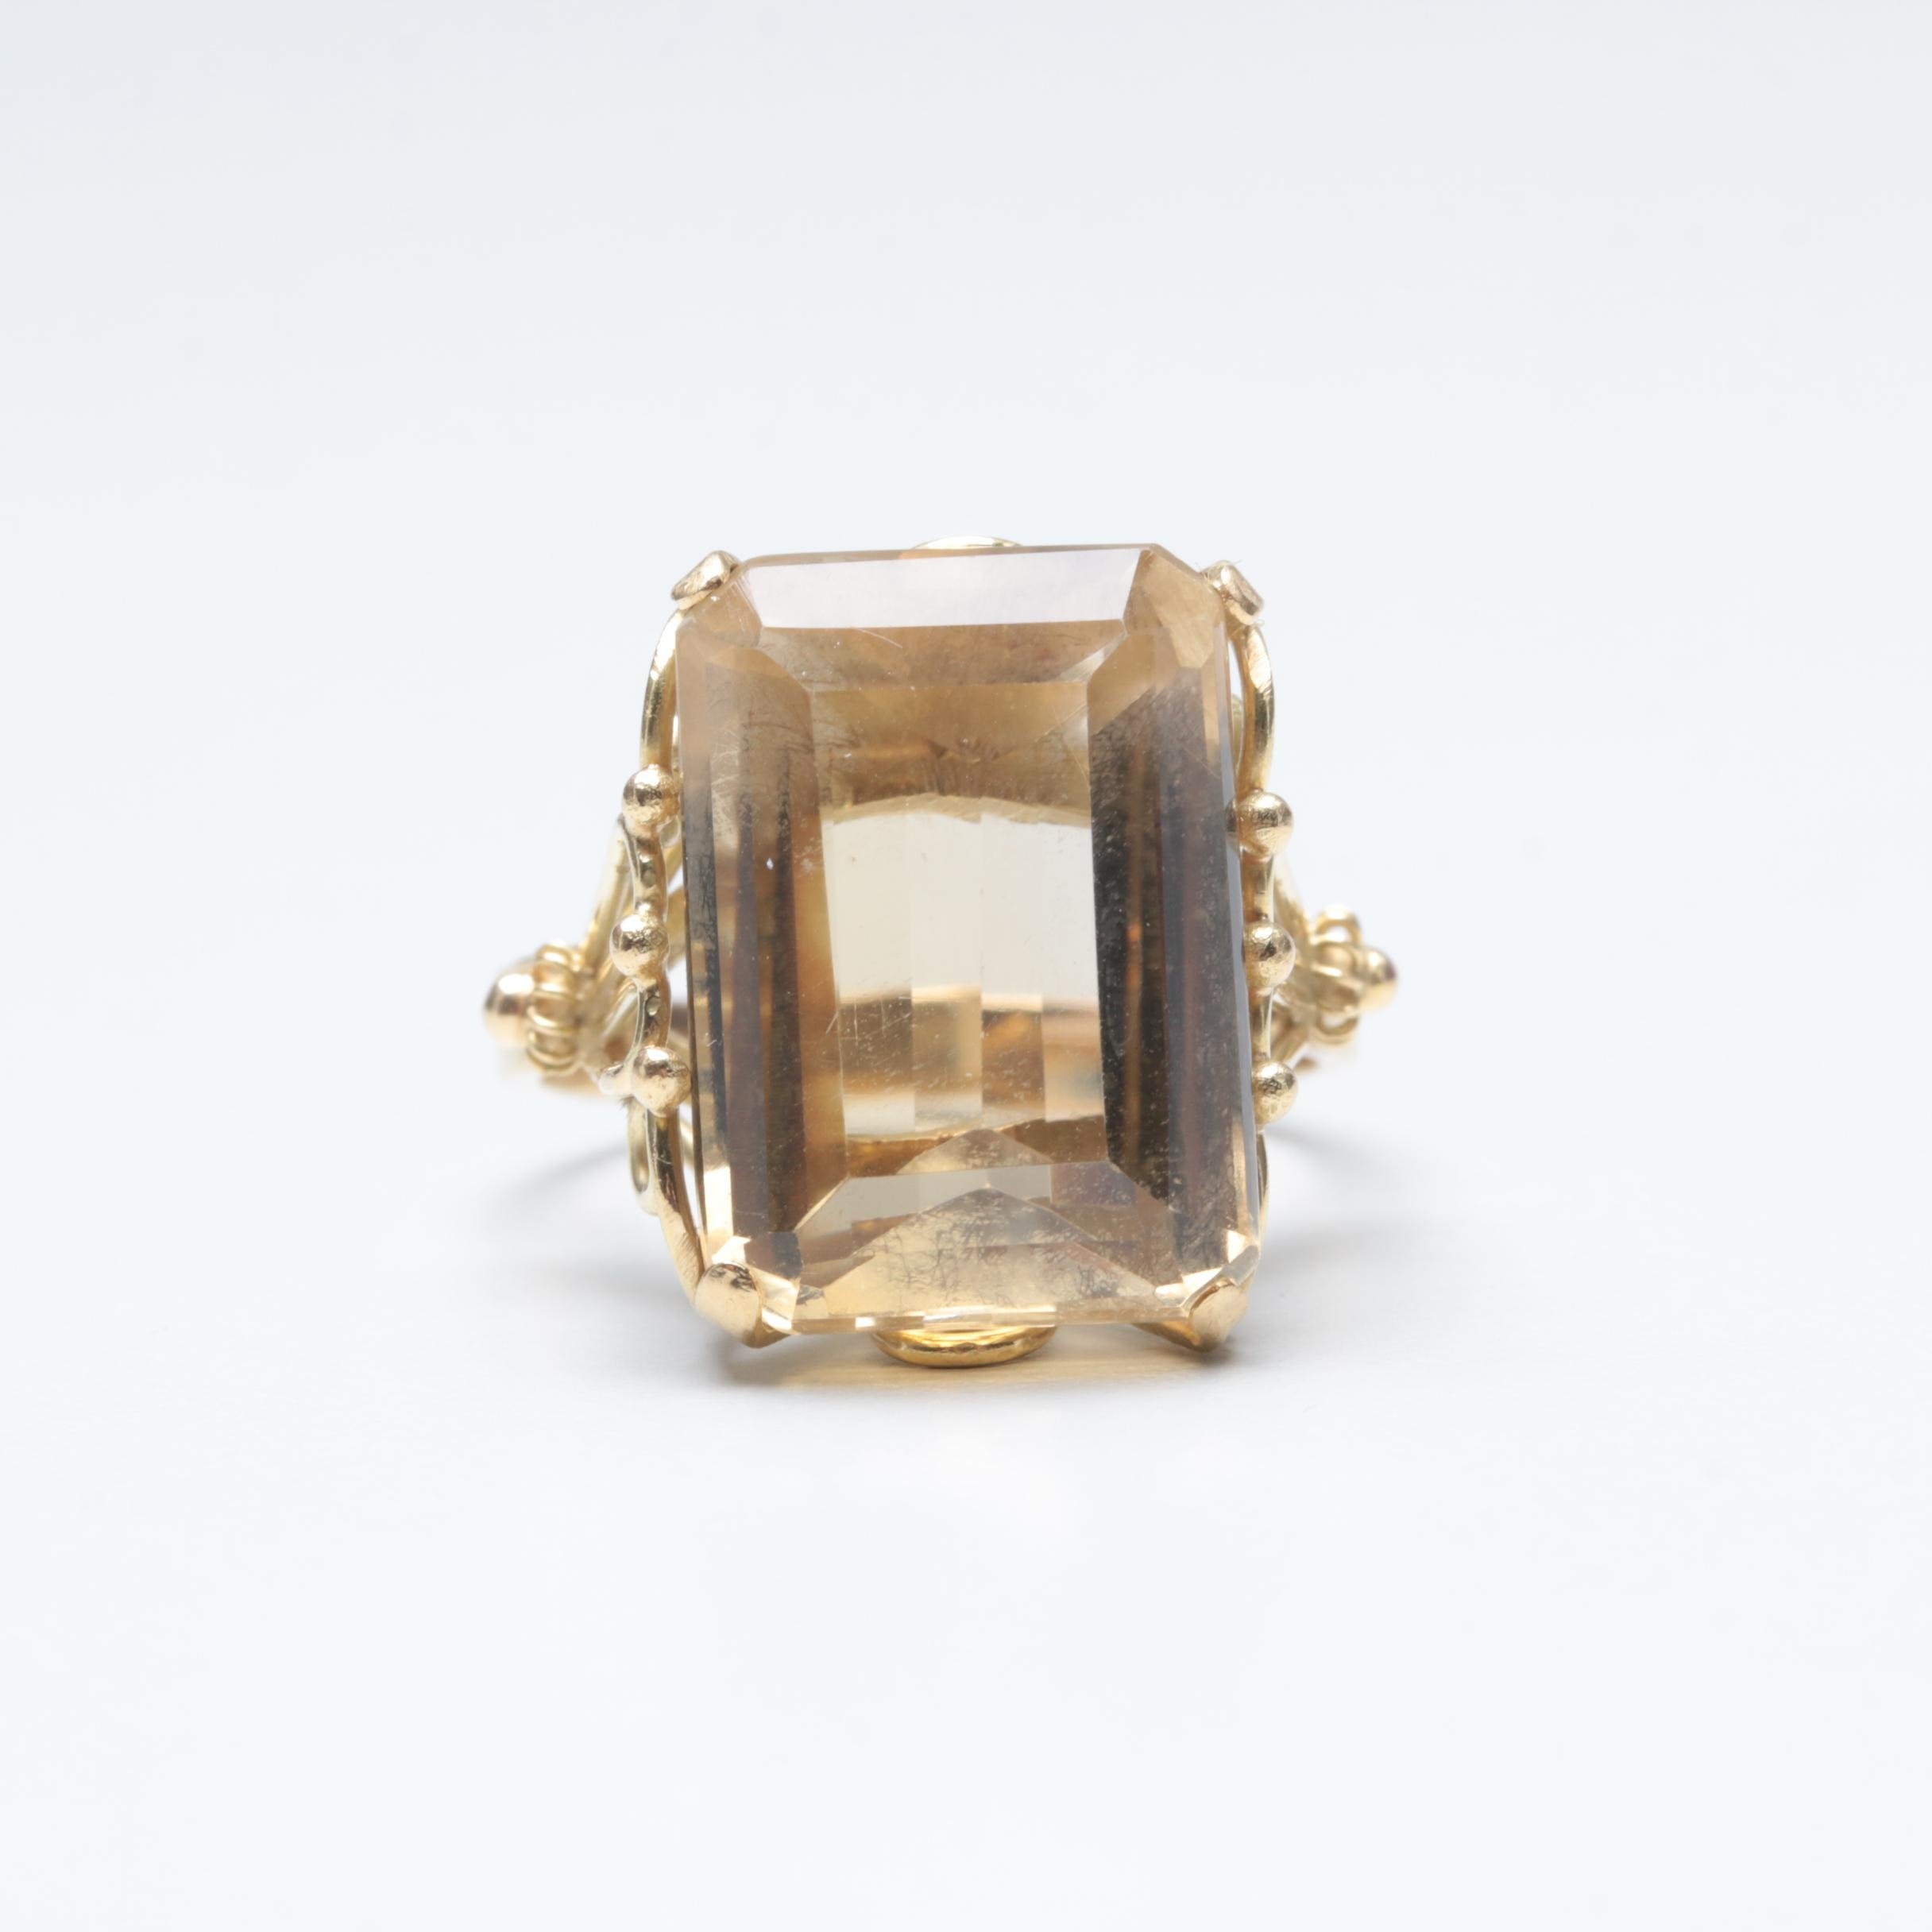 Vintage 18K Yellow Gold 12.57 CT Citrine Ring